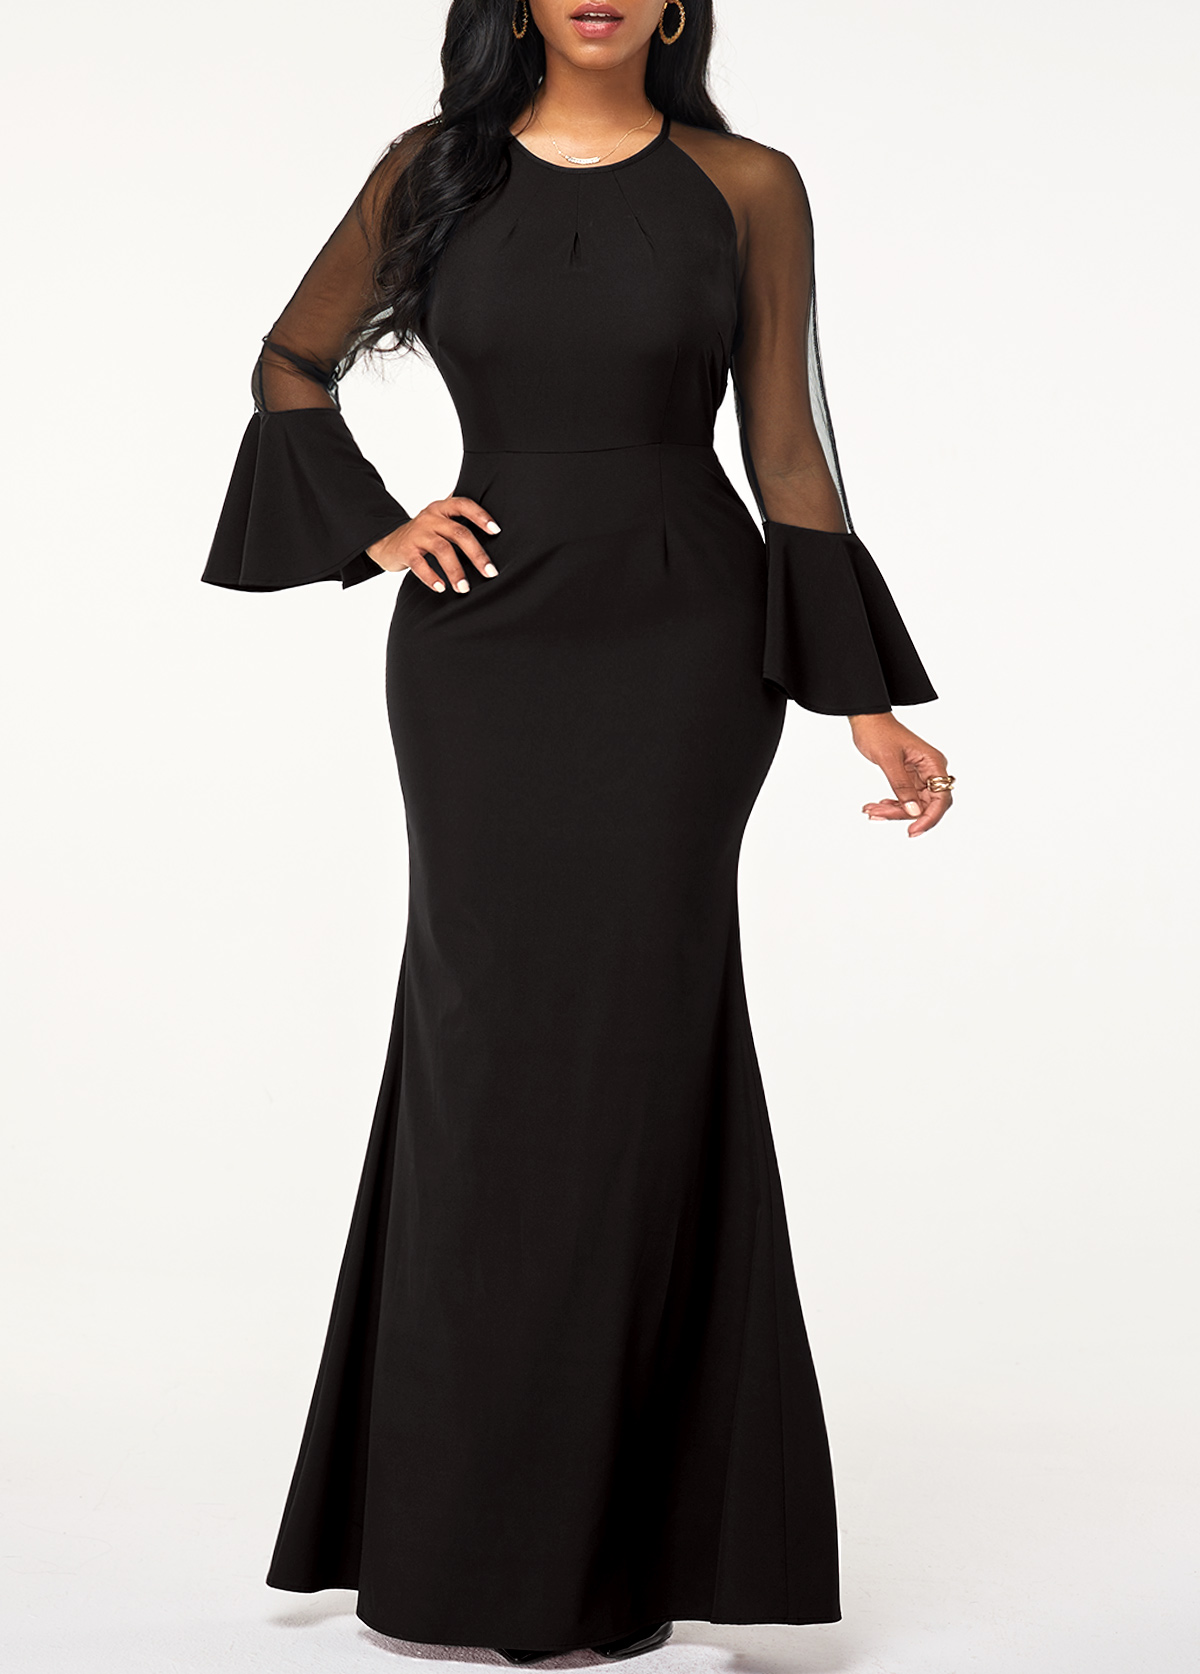 Mesh Panel Back Zipper Flare Sleeve Maxi Dress